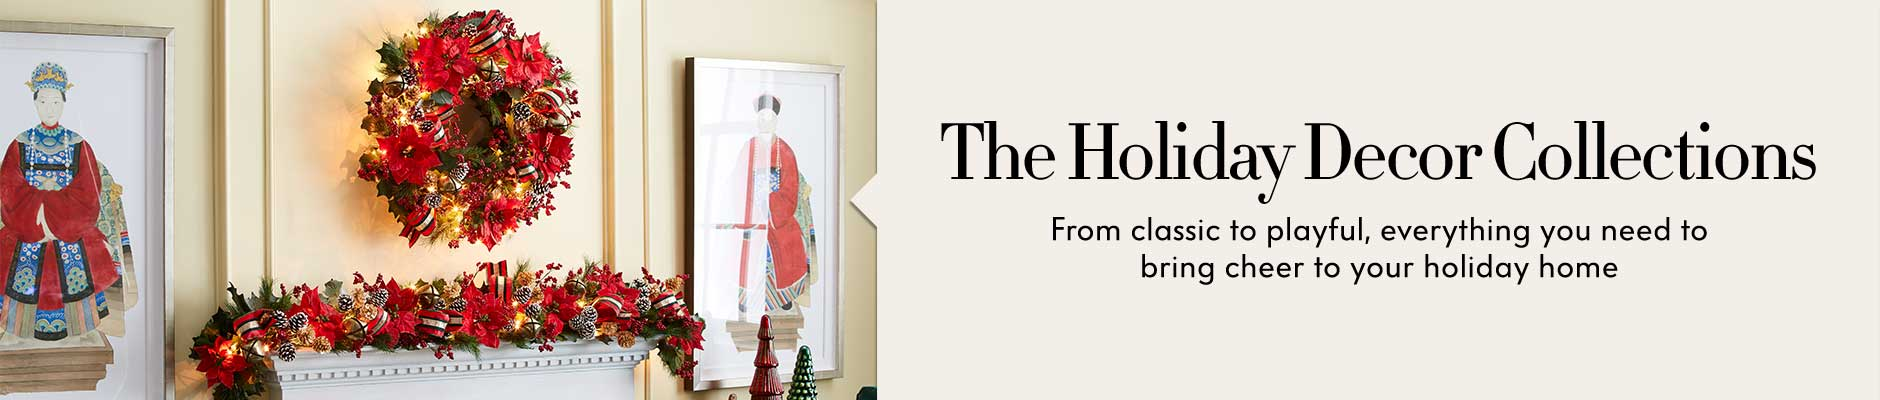 The Holiday Decor Collections - From classic to playful, everything you need to bring cheer to your holiday home